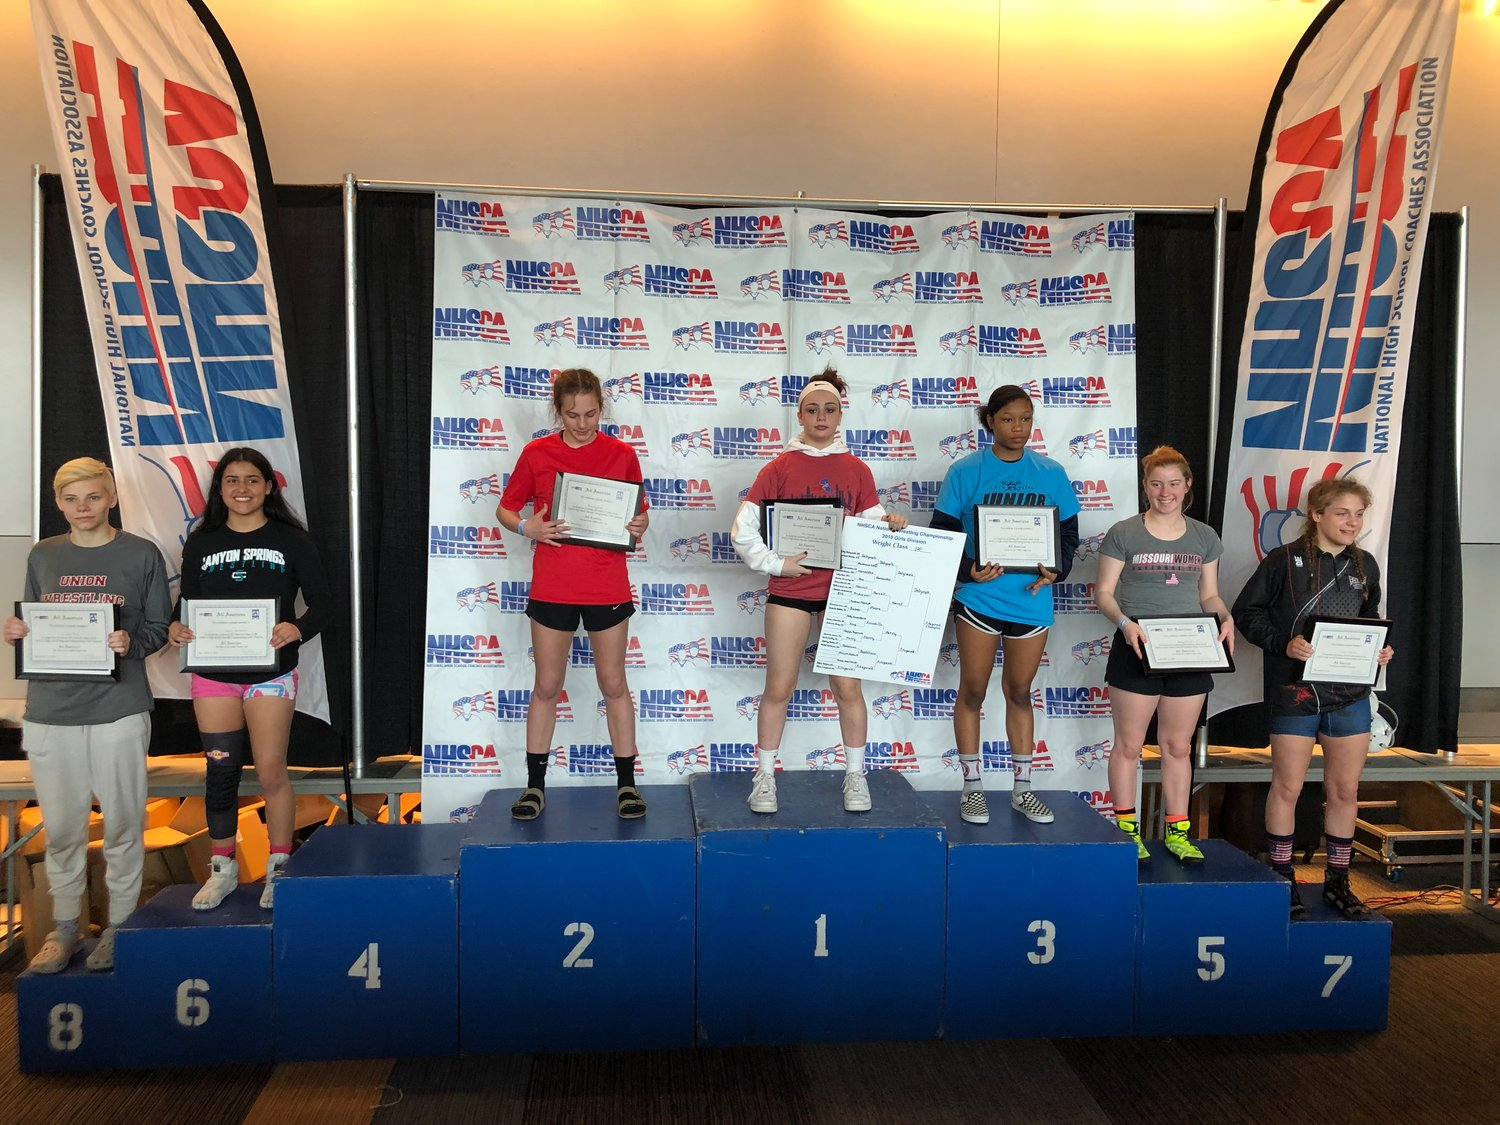 Ally Fitzgerald recently became the first female to win the NHSCA High School Nationals in Virginia Beach.